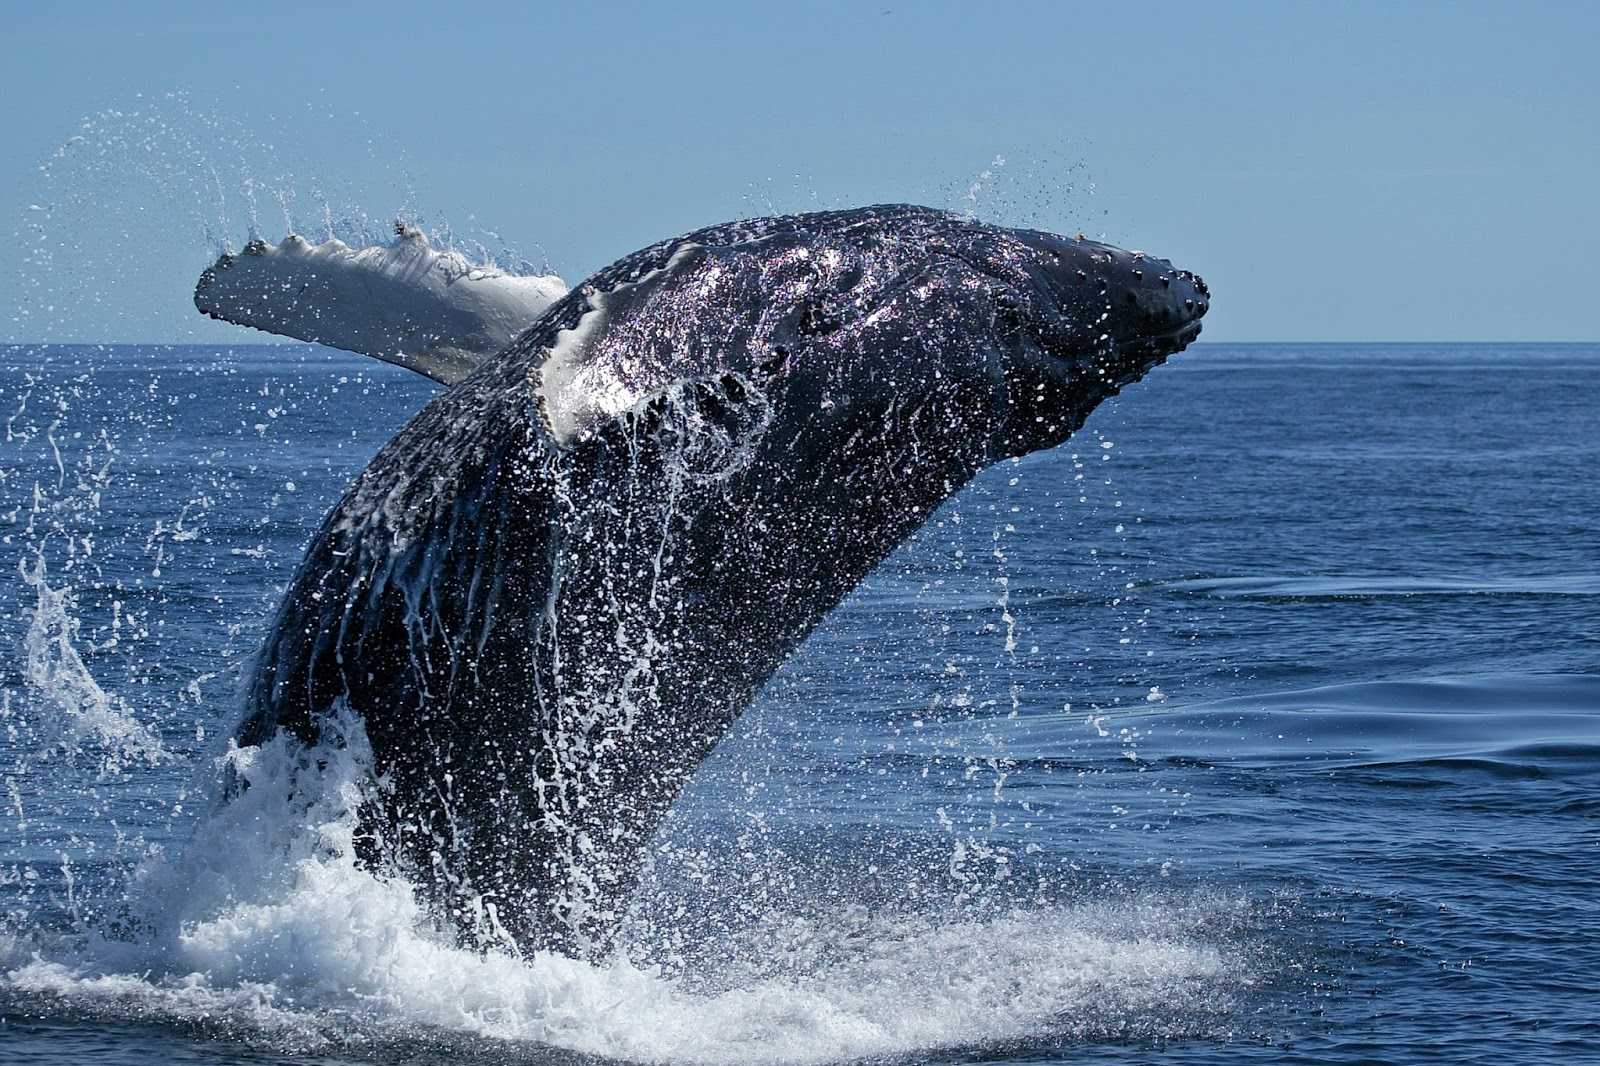 A picture of a whale jumping out of the water.